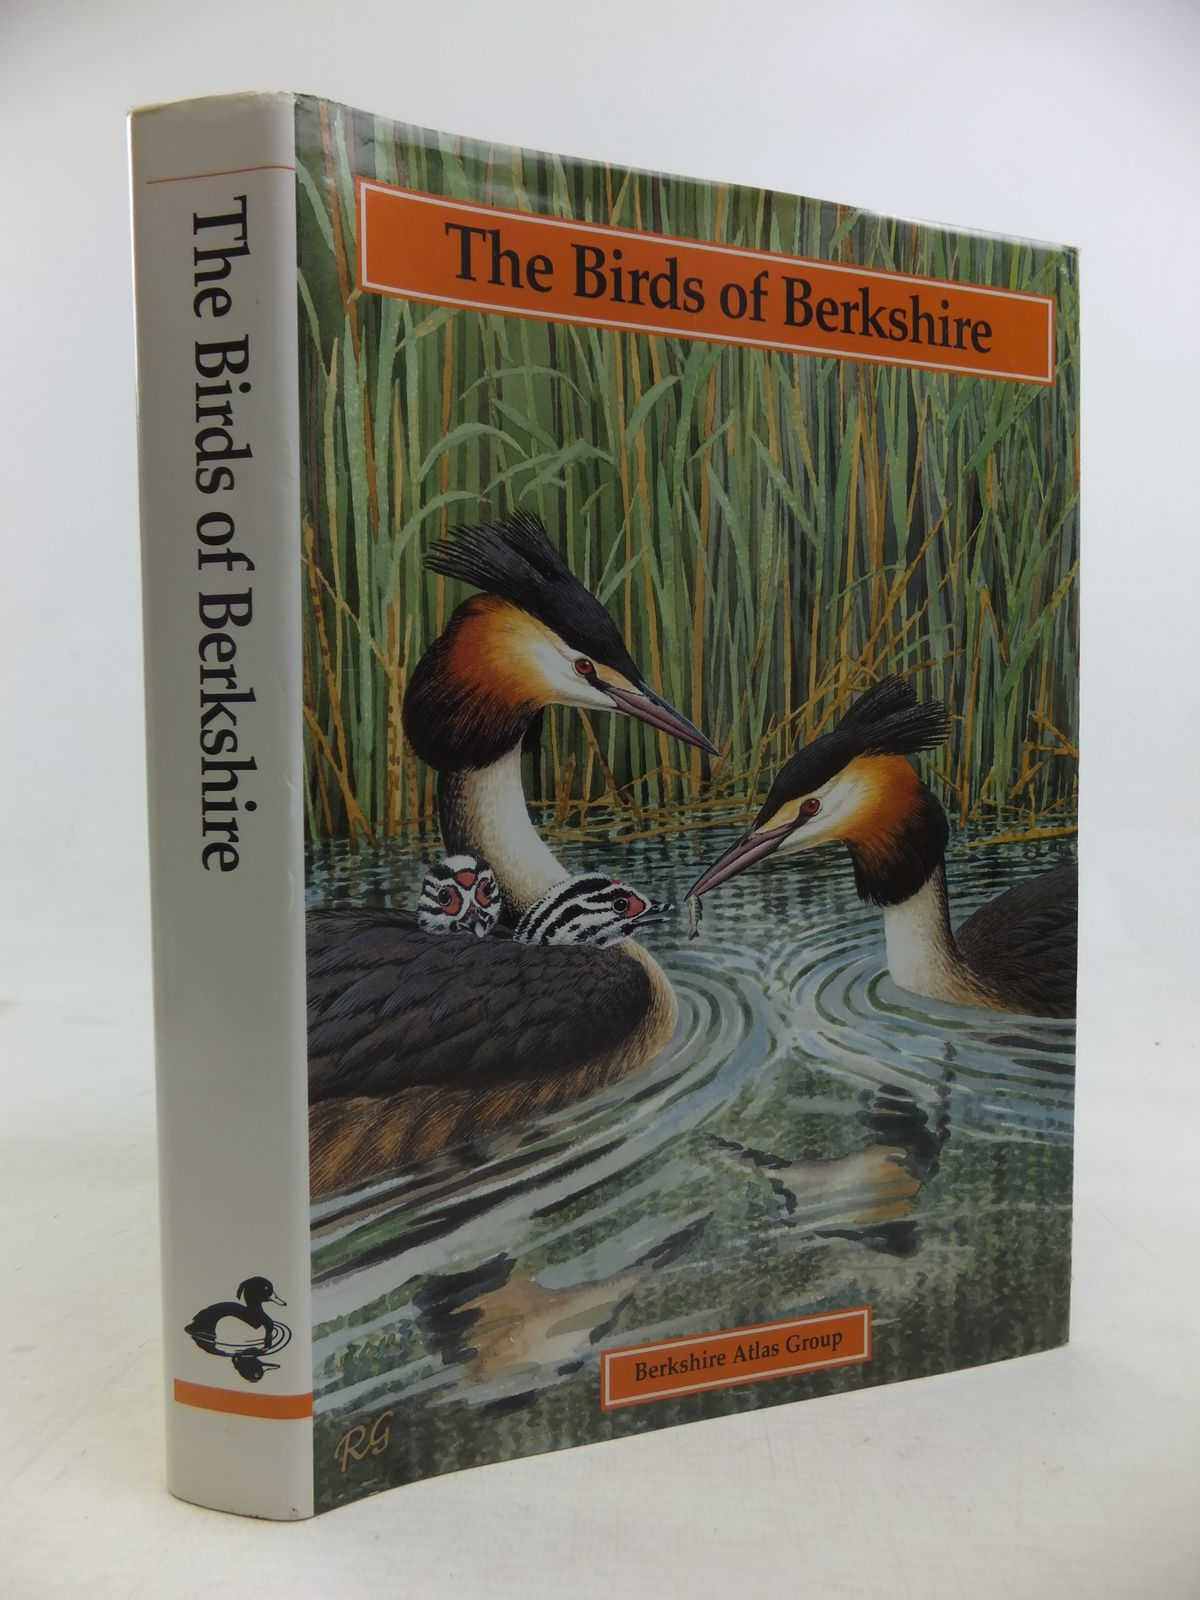 Photo of THE BIRDS OF BERKSHIRE written by Standley, Peter Bucknell, N.J. Swash, Andy Collins, Ian D. illustrated by Gillmor, Robert published by The Berkshire Atlas Group (STOCK CODE: 1810932)  for sale by Stella & Rose's Books